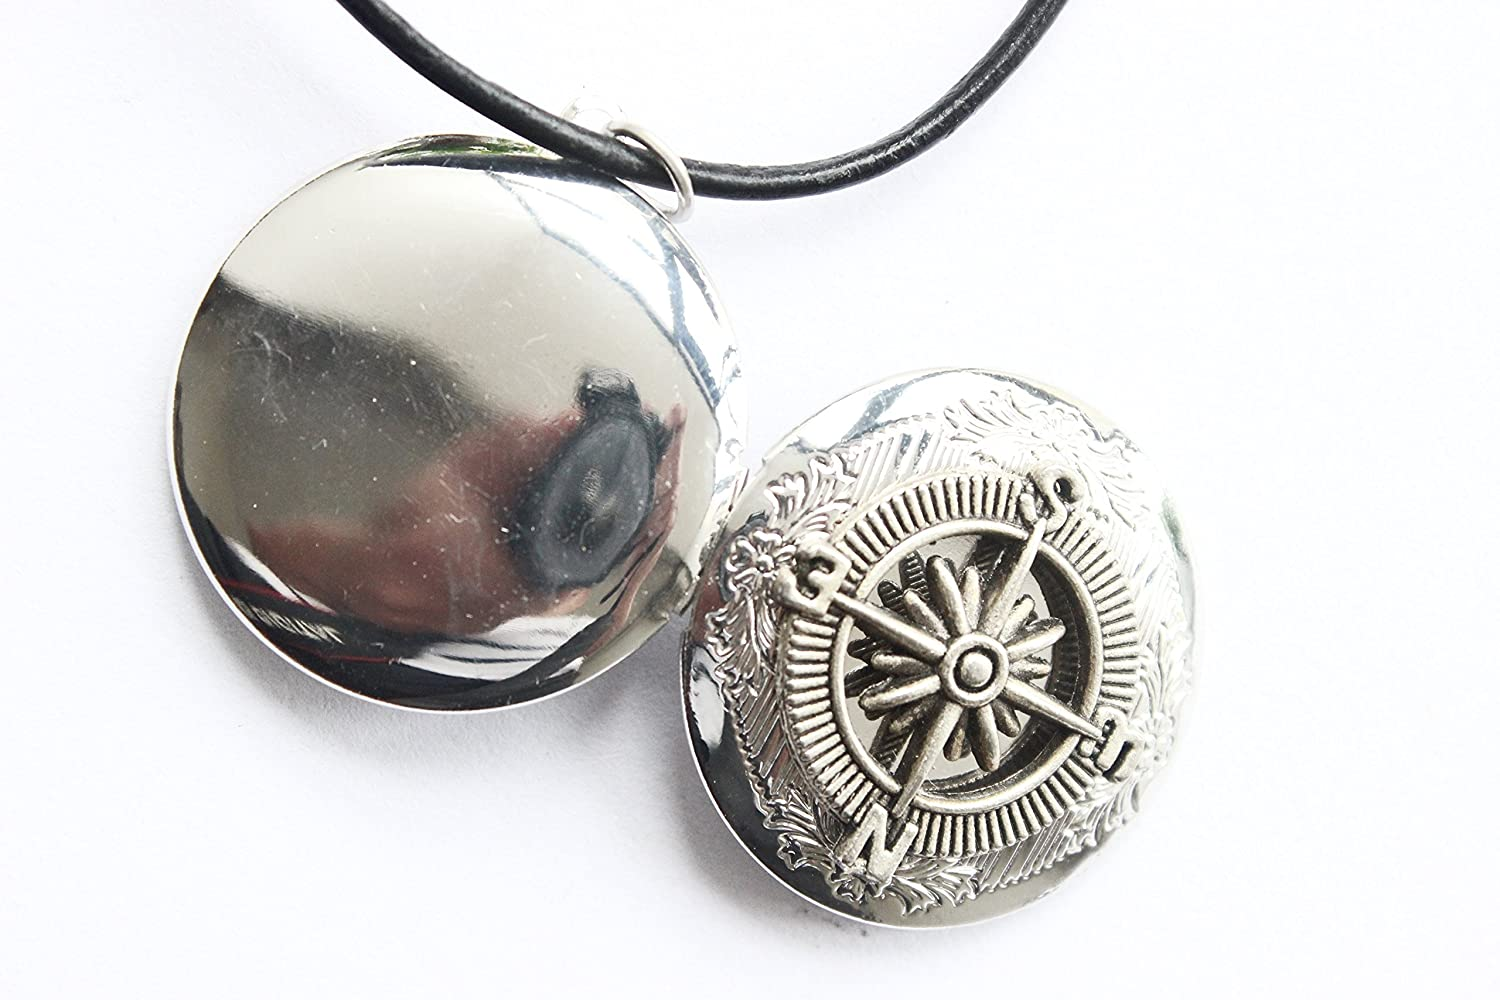 takes worn you lockets is imagination locket on or a flies joyfunnell fired with the being it he free depending medievalbirdlocket bird under large month how openwithbird medieval secret mood when